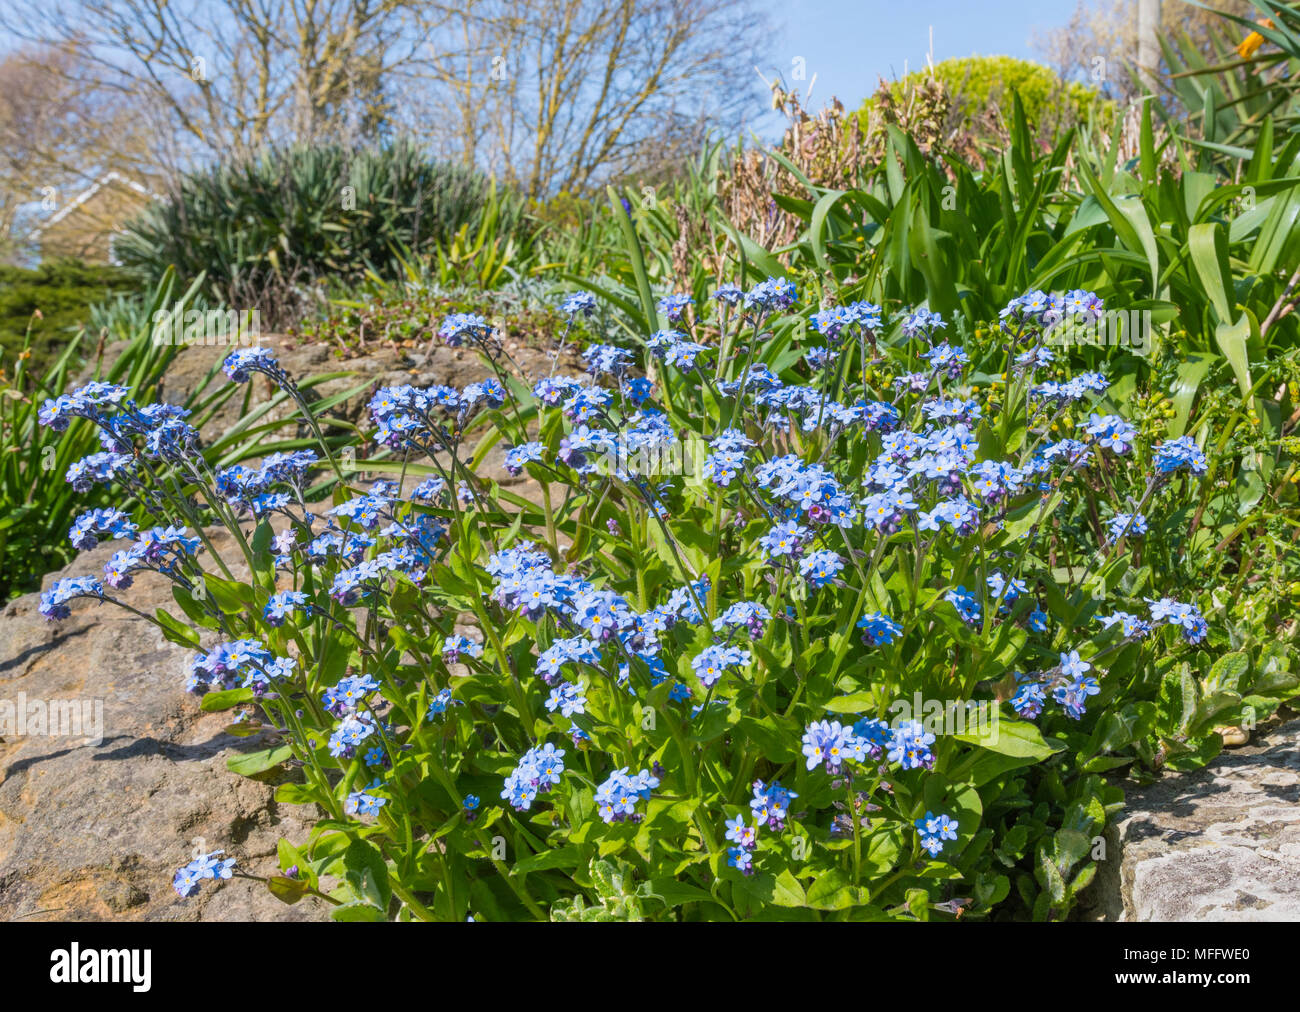 Forget-Me-Nots, AKA Scorpion Grasses, small blue flowers from the genus Myosotis, flowering in late Spring in the UK. Blue Forget-Me-Not. Stock Photo